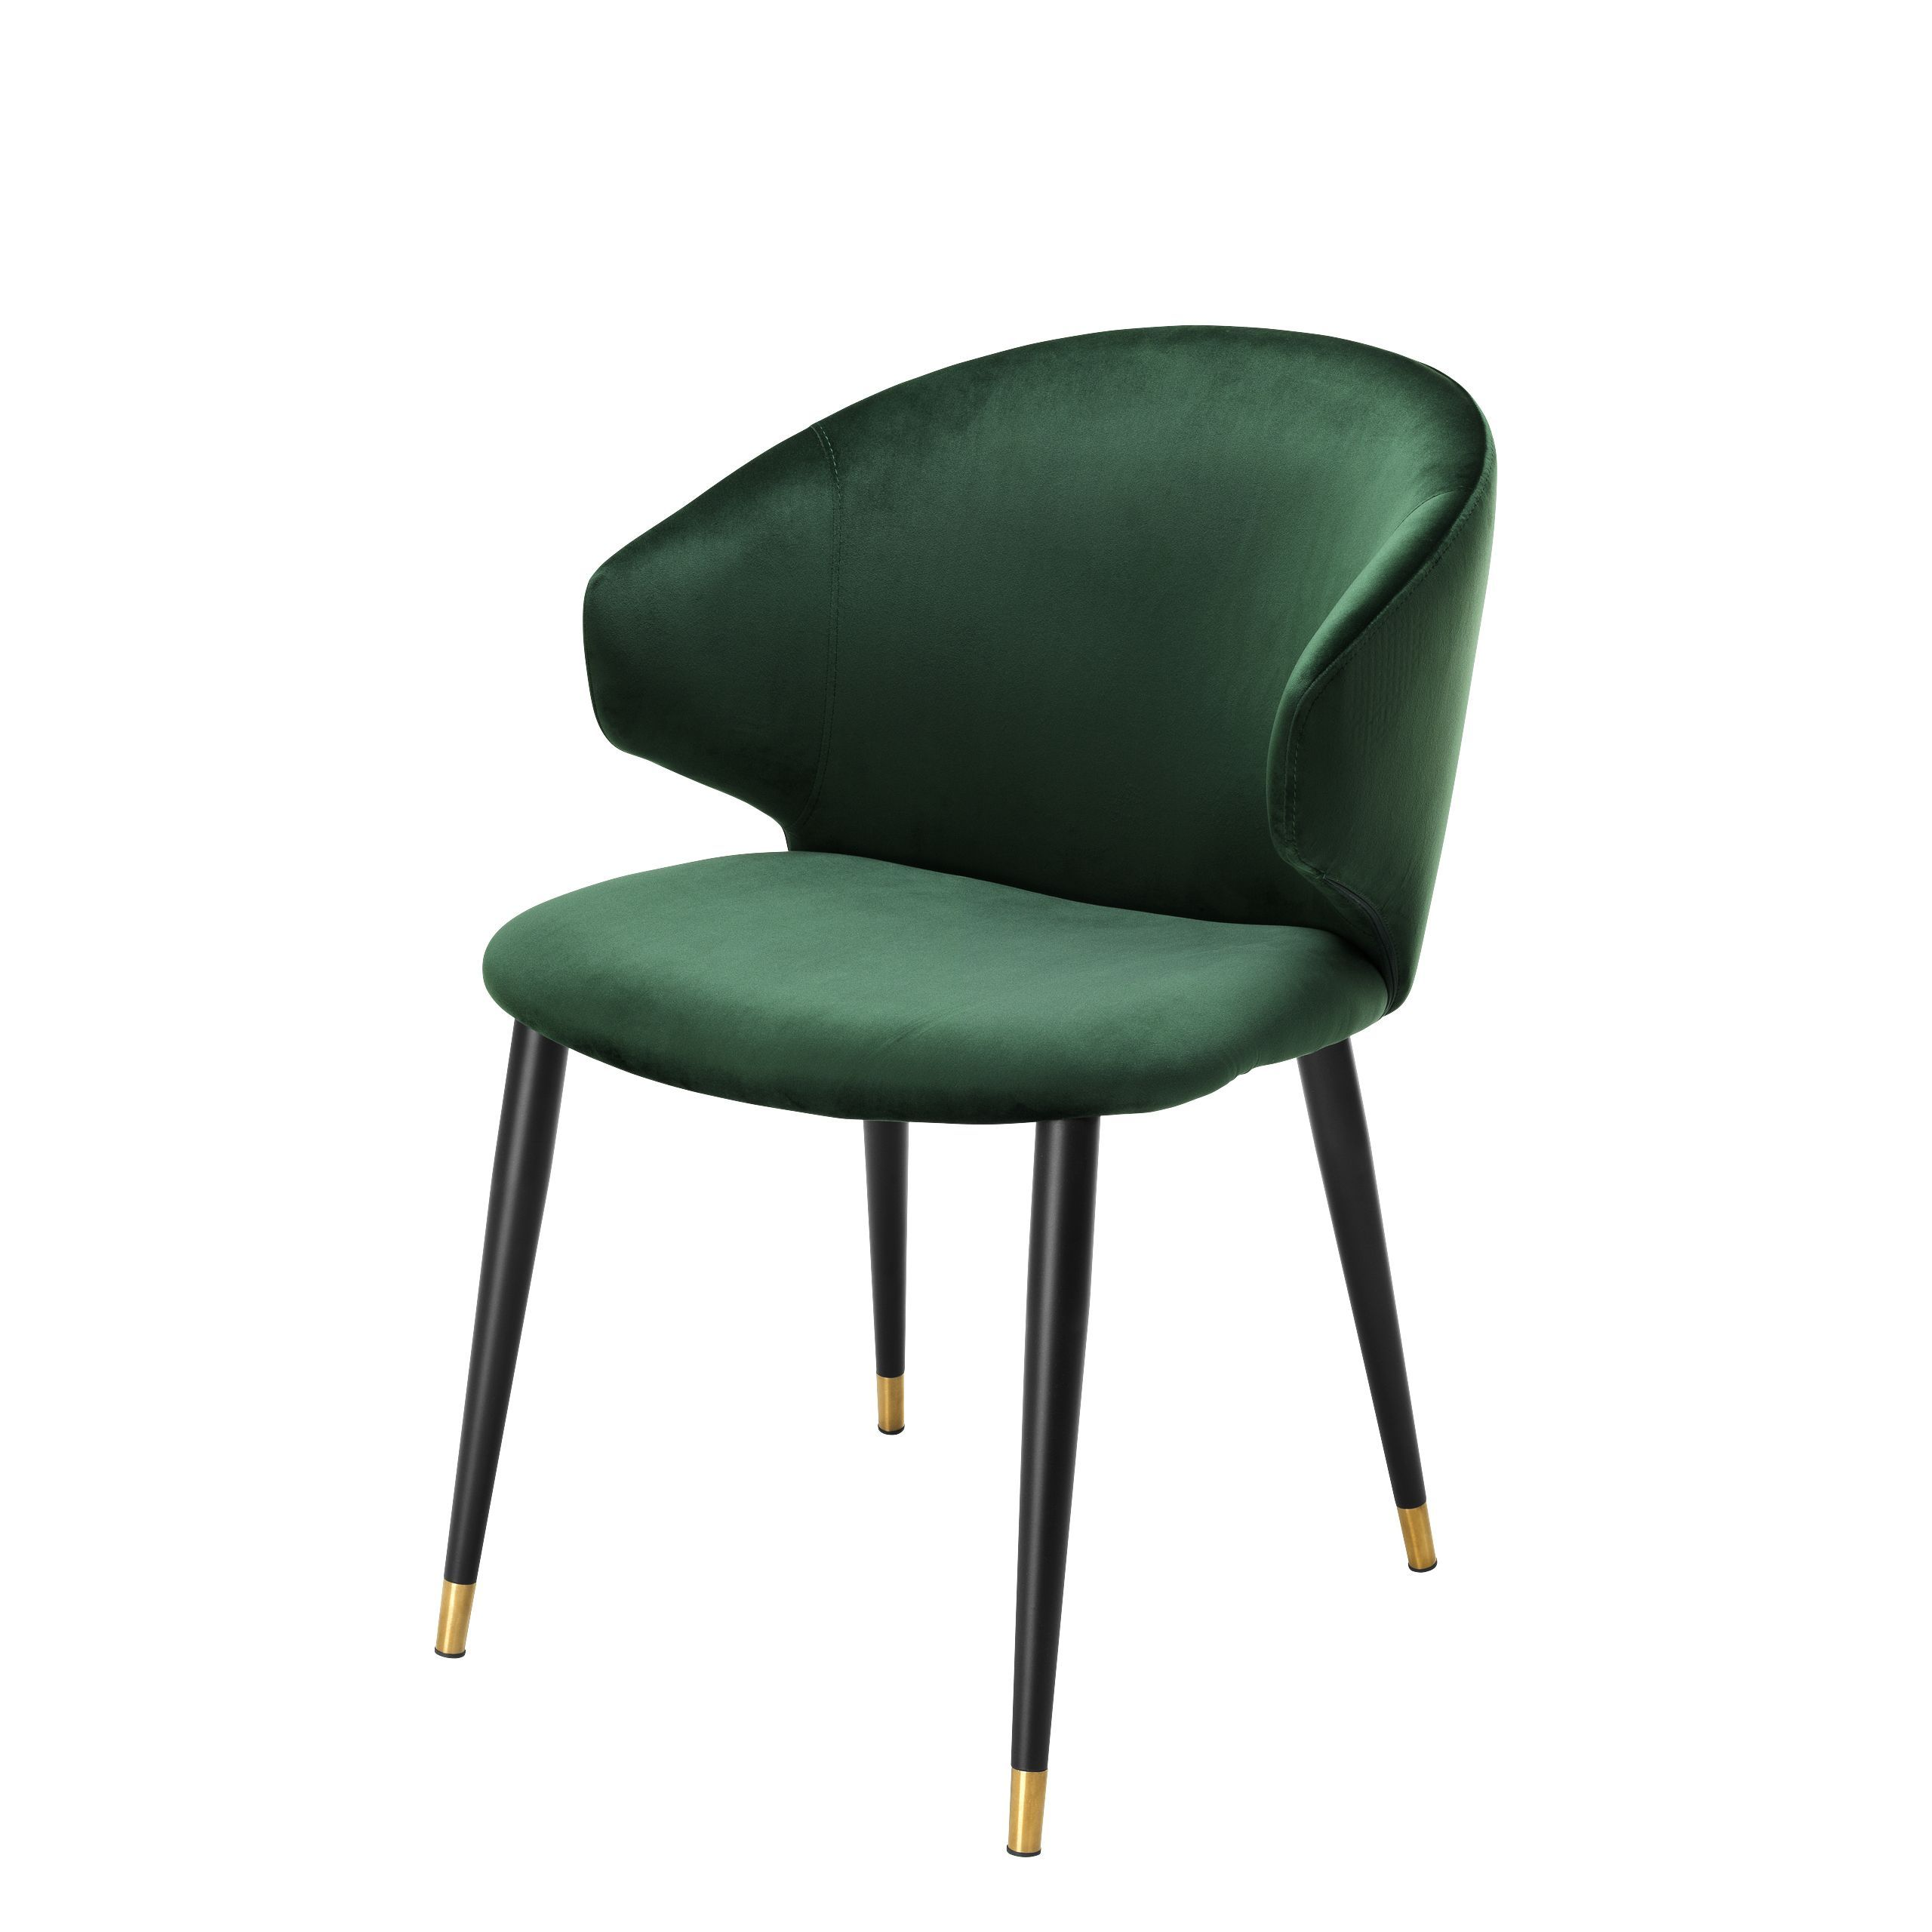 Green Velvet Dining Chair Eichholtz Volante In 2020 Velvet Dining Chairs Dining Chairs Green Dining Chairs